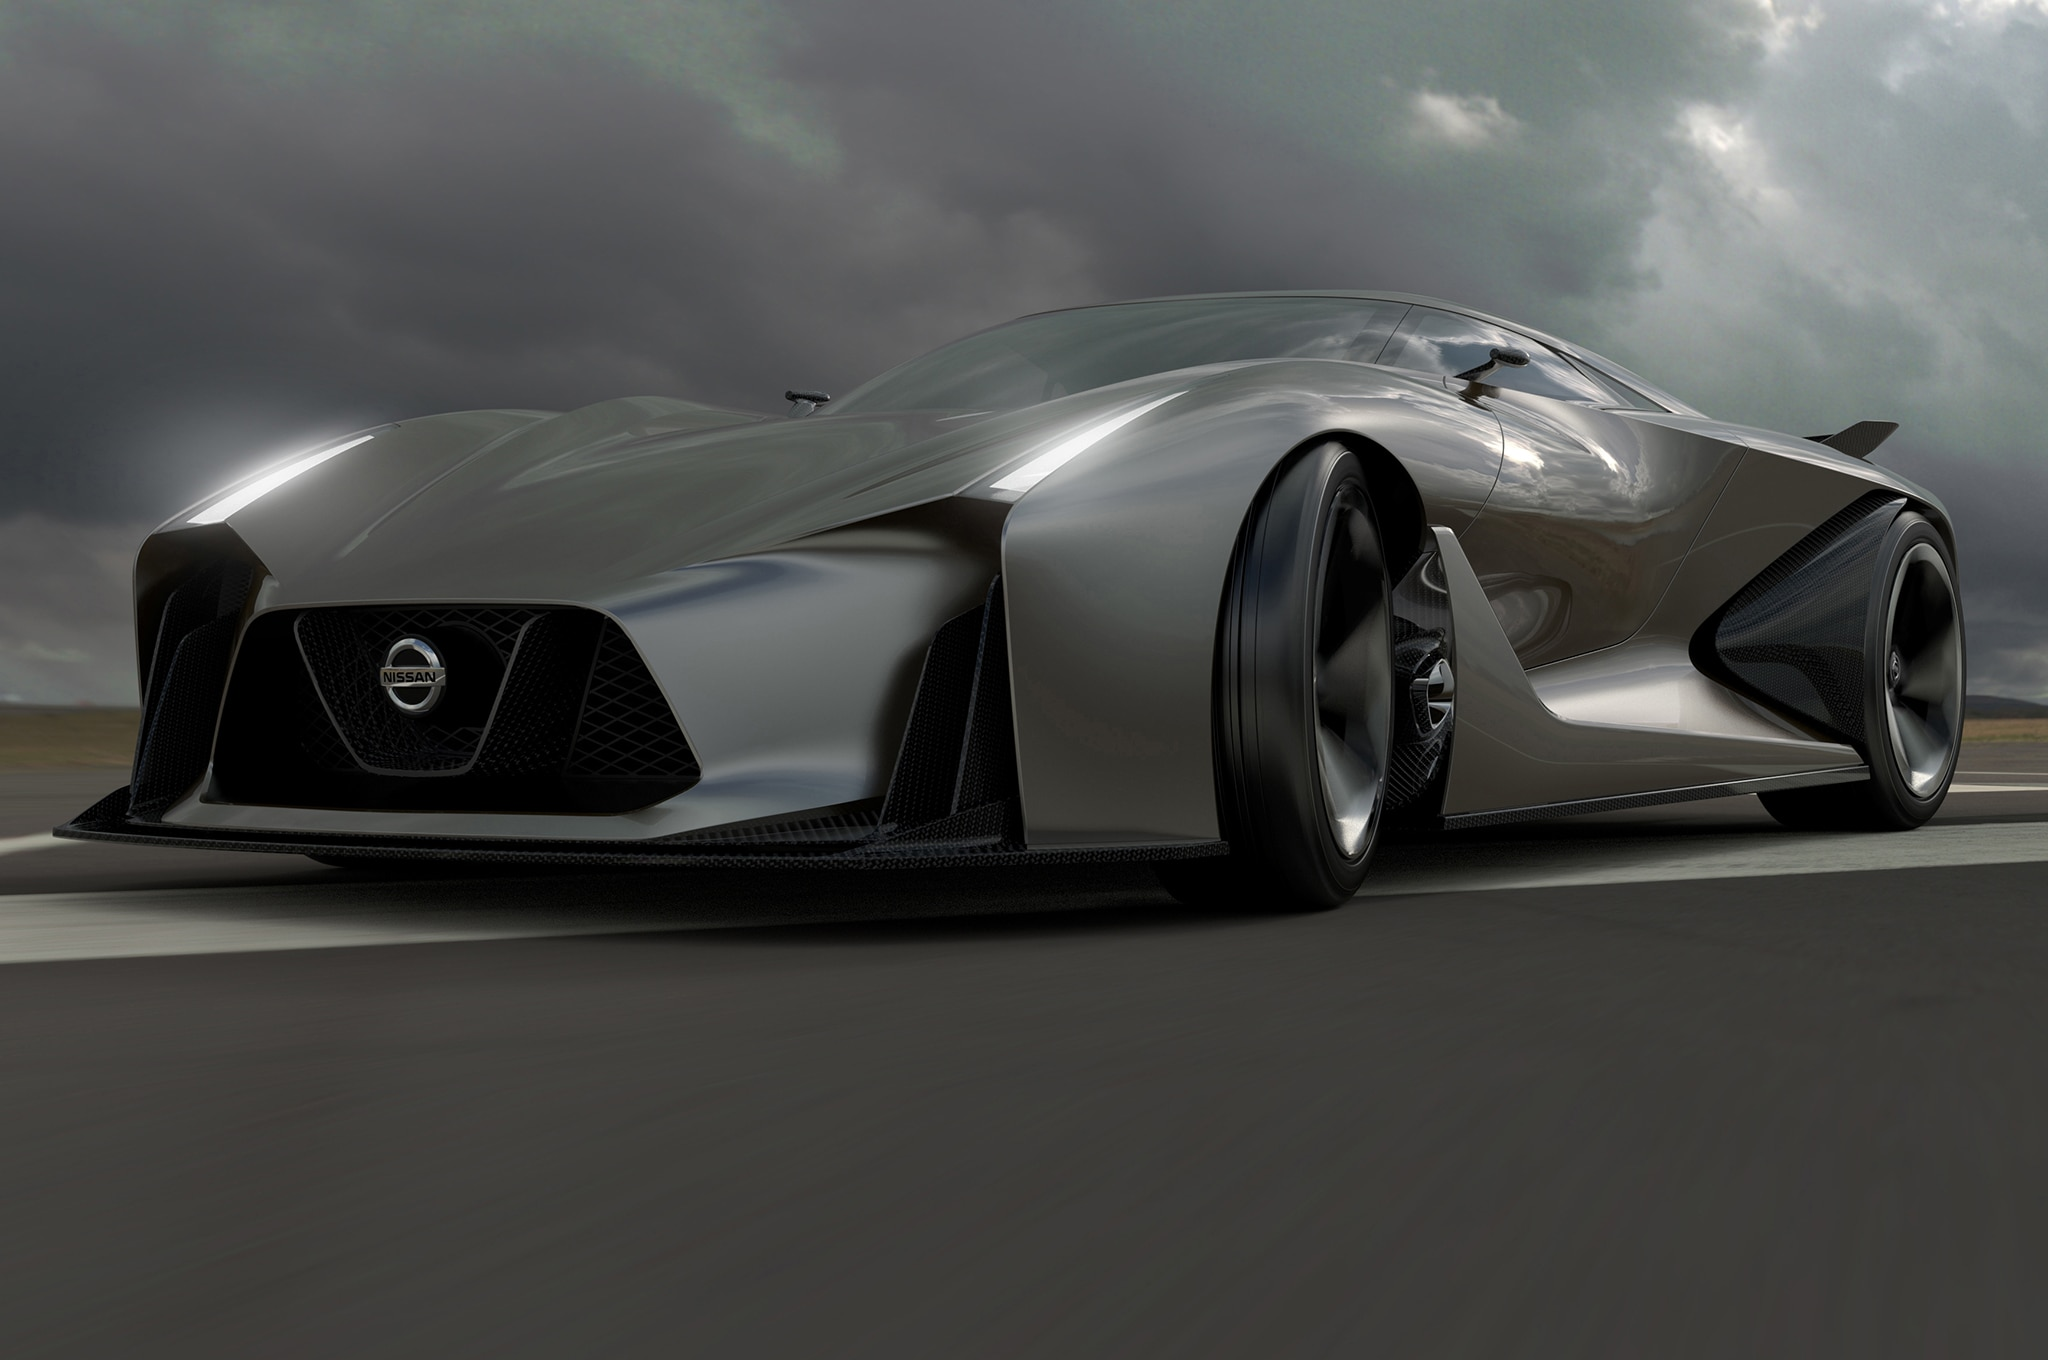 Report: Next Nissan GT-R to Use Hybrid Power